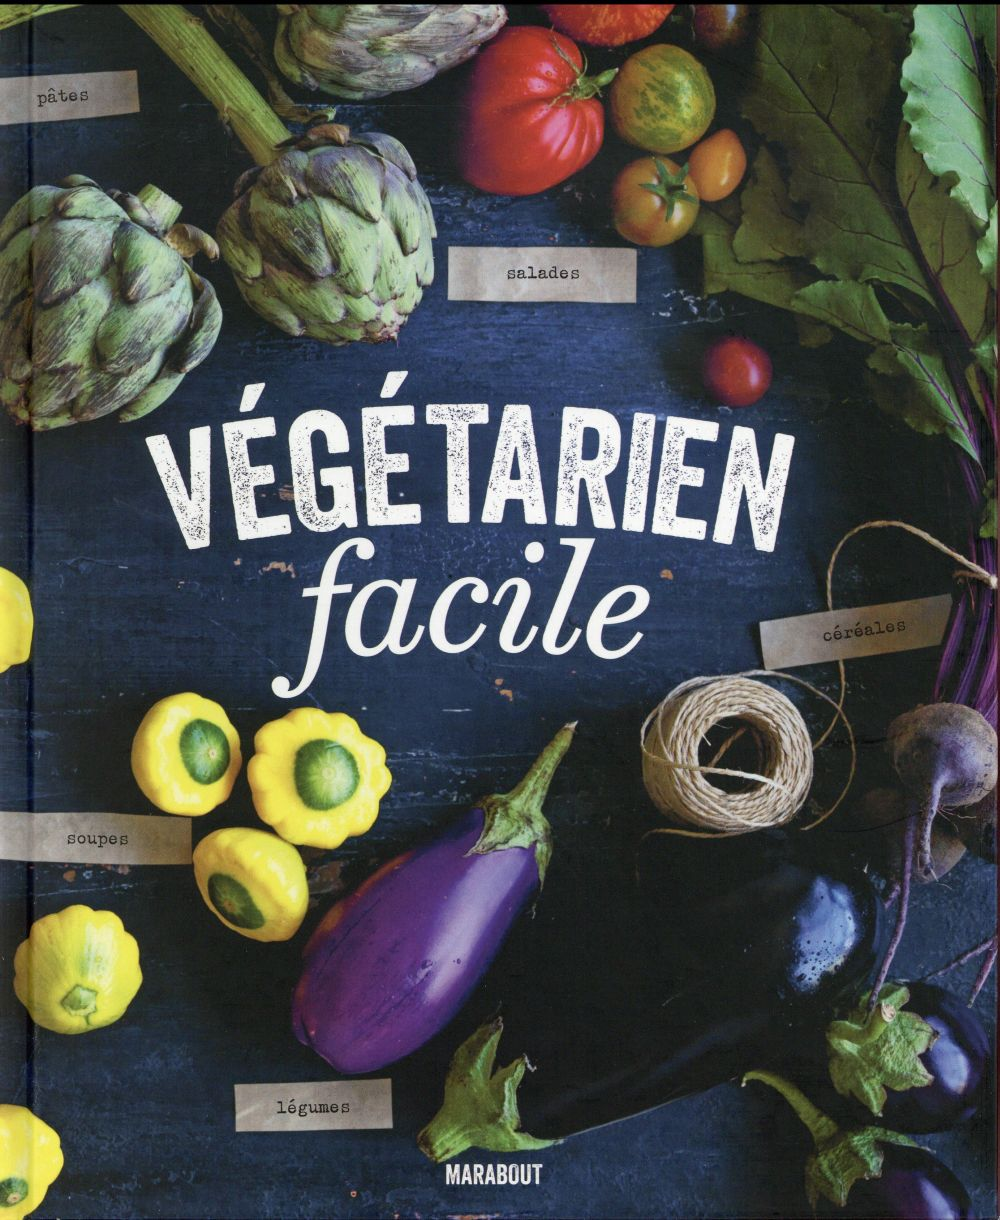 VEGETARIEN FACILE